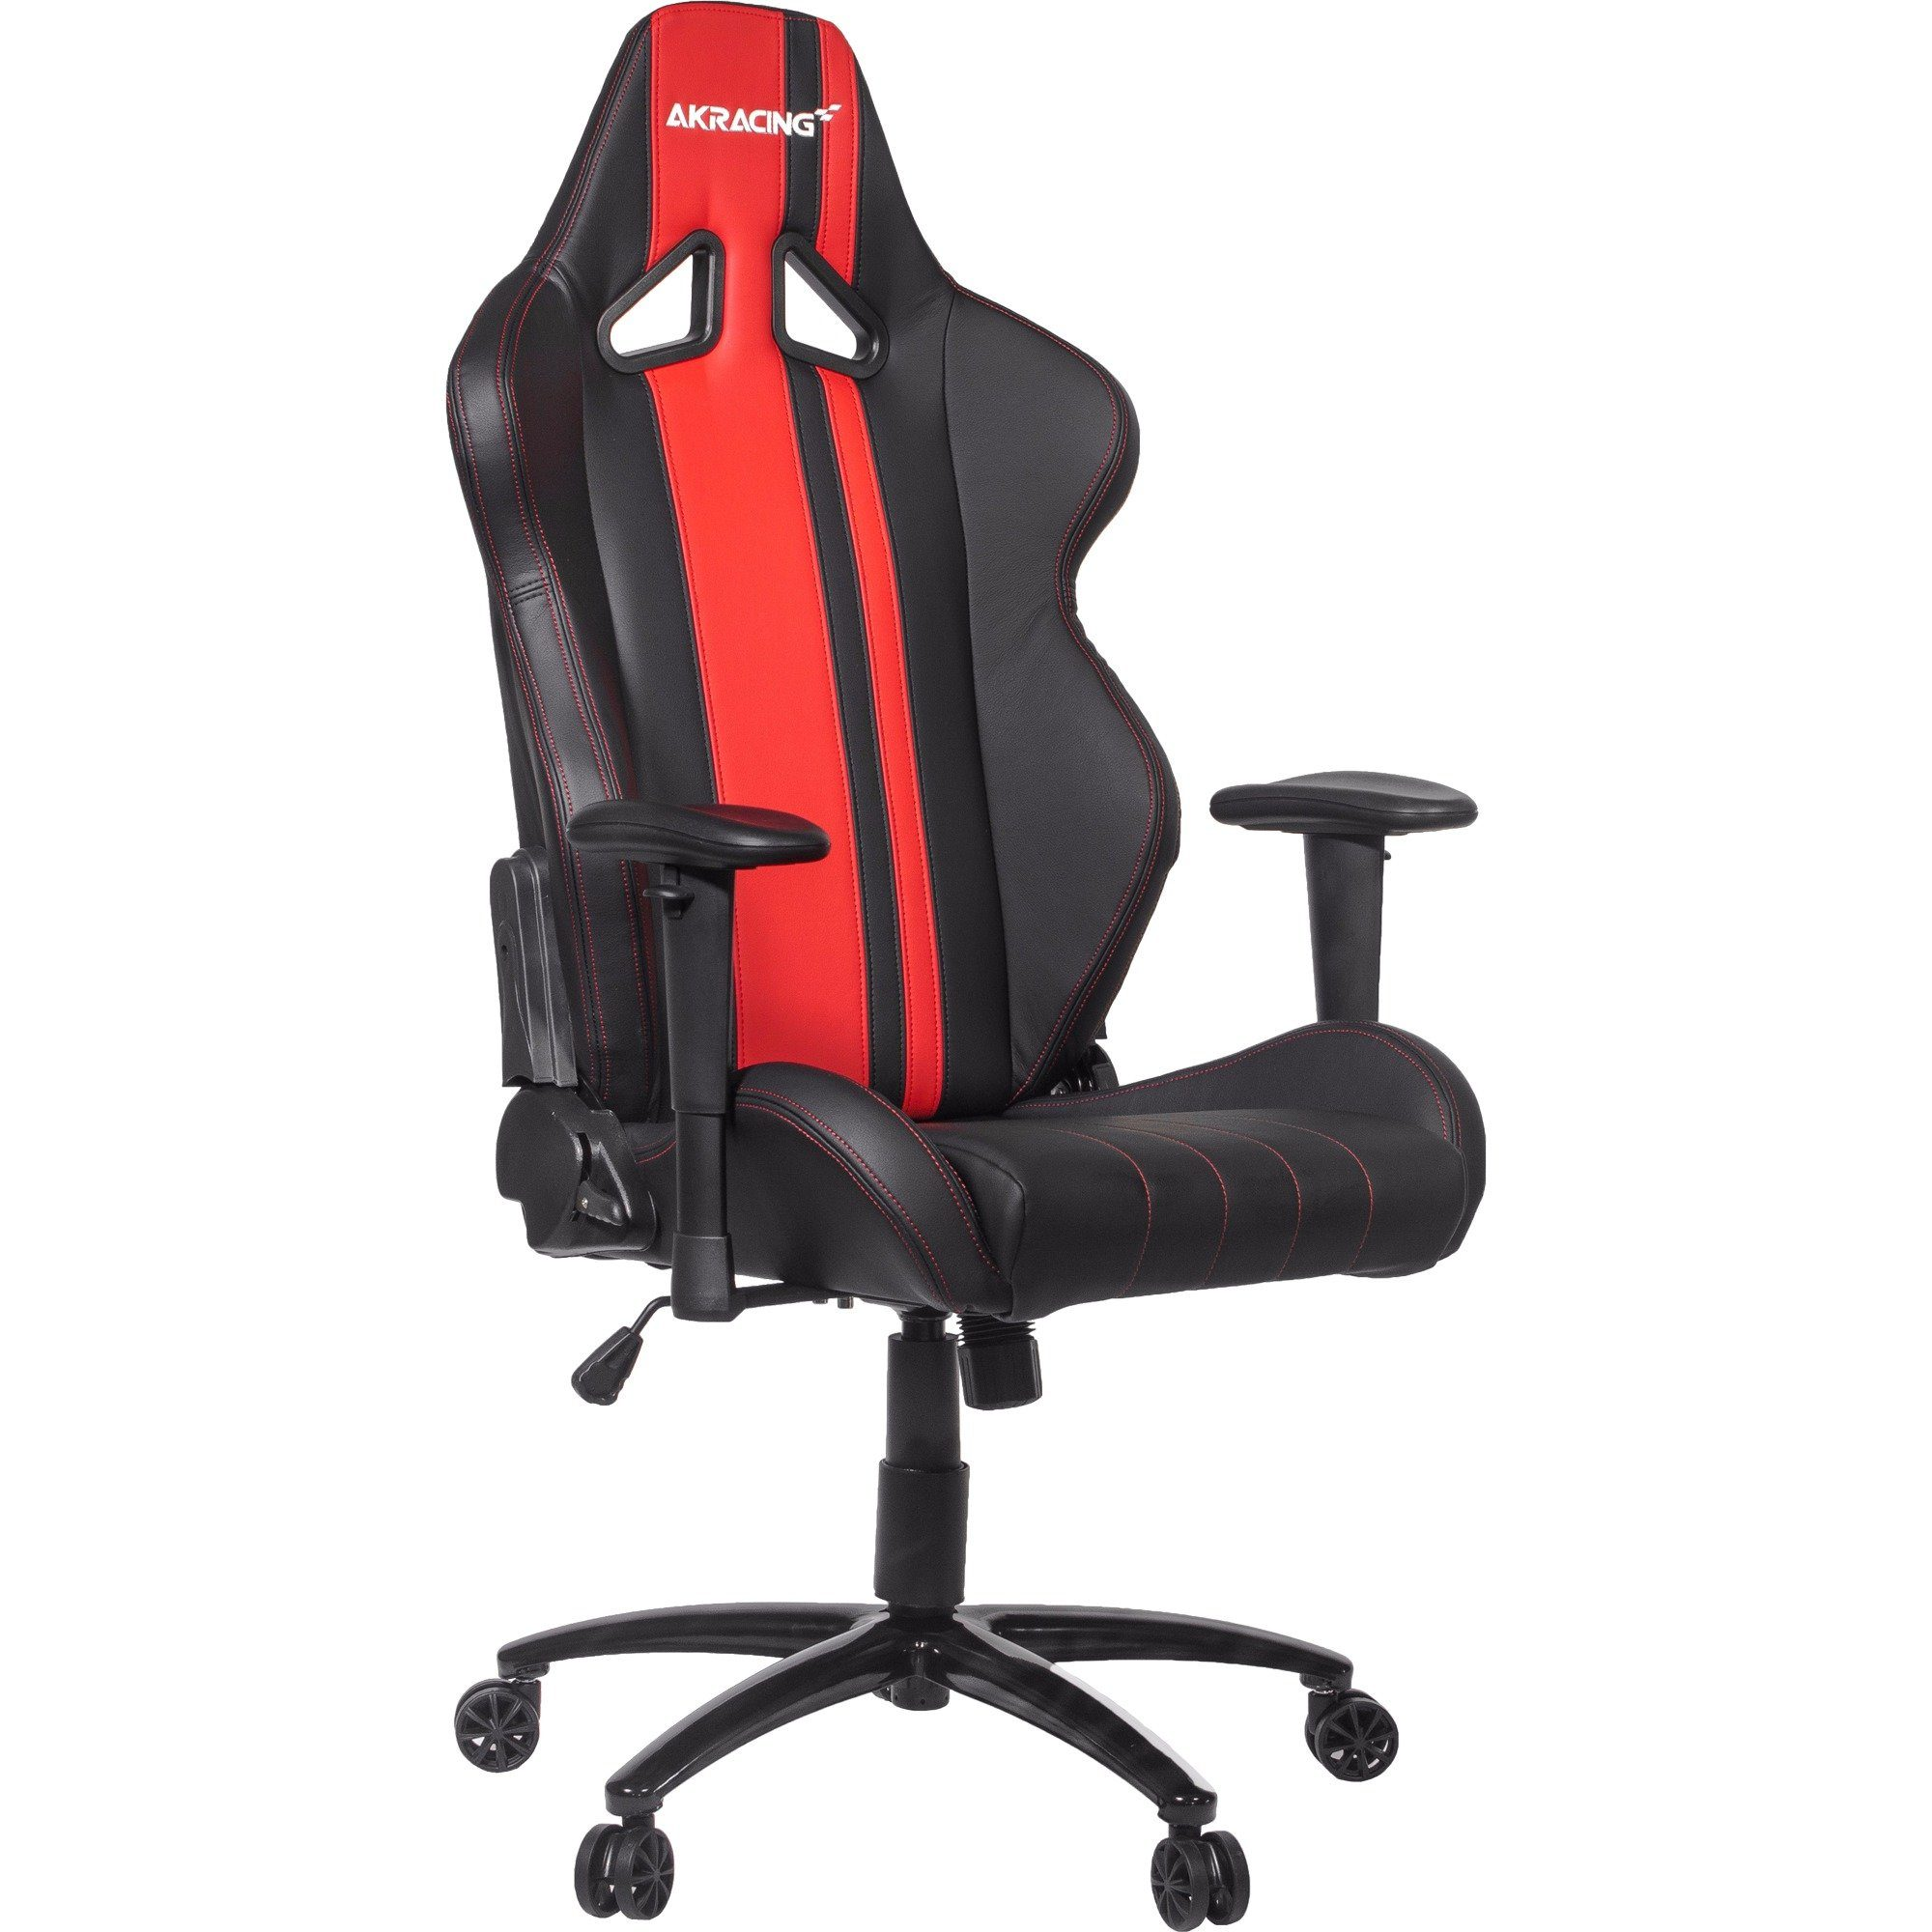 AKRACING Spielsitz »Rush Gaming Chair«